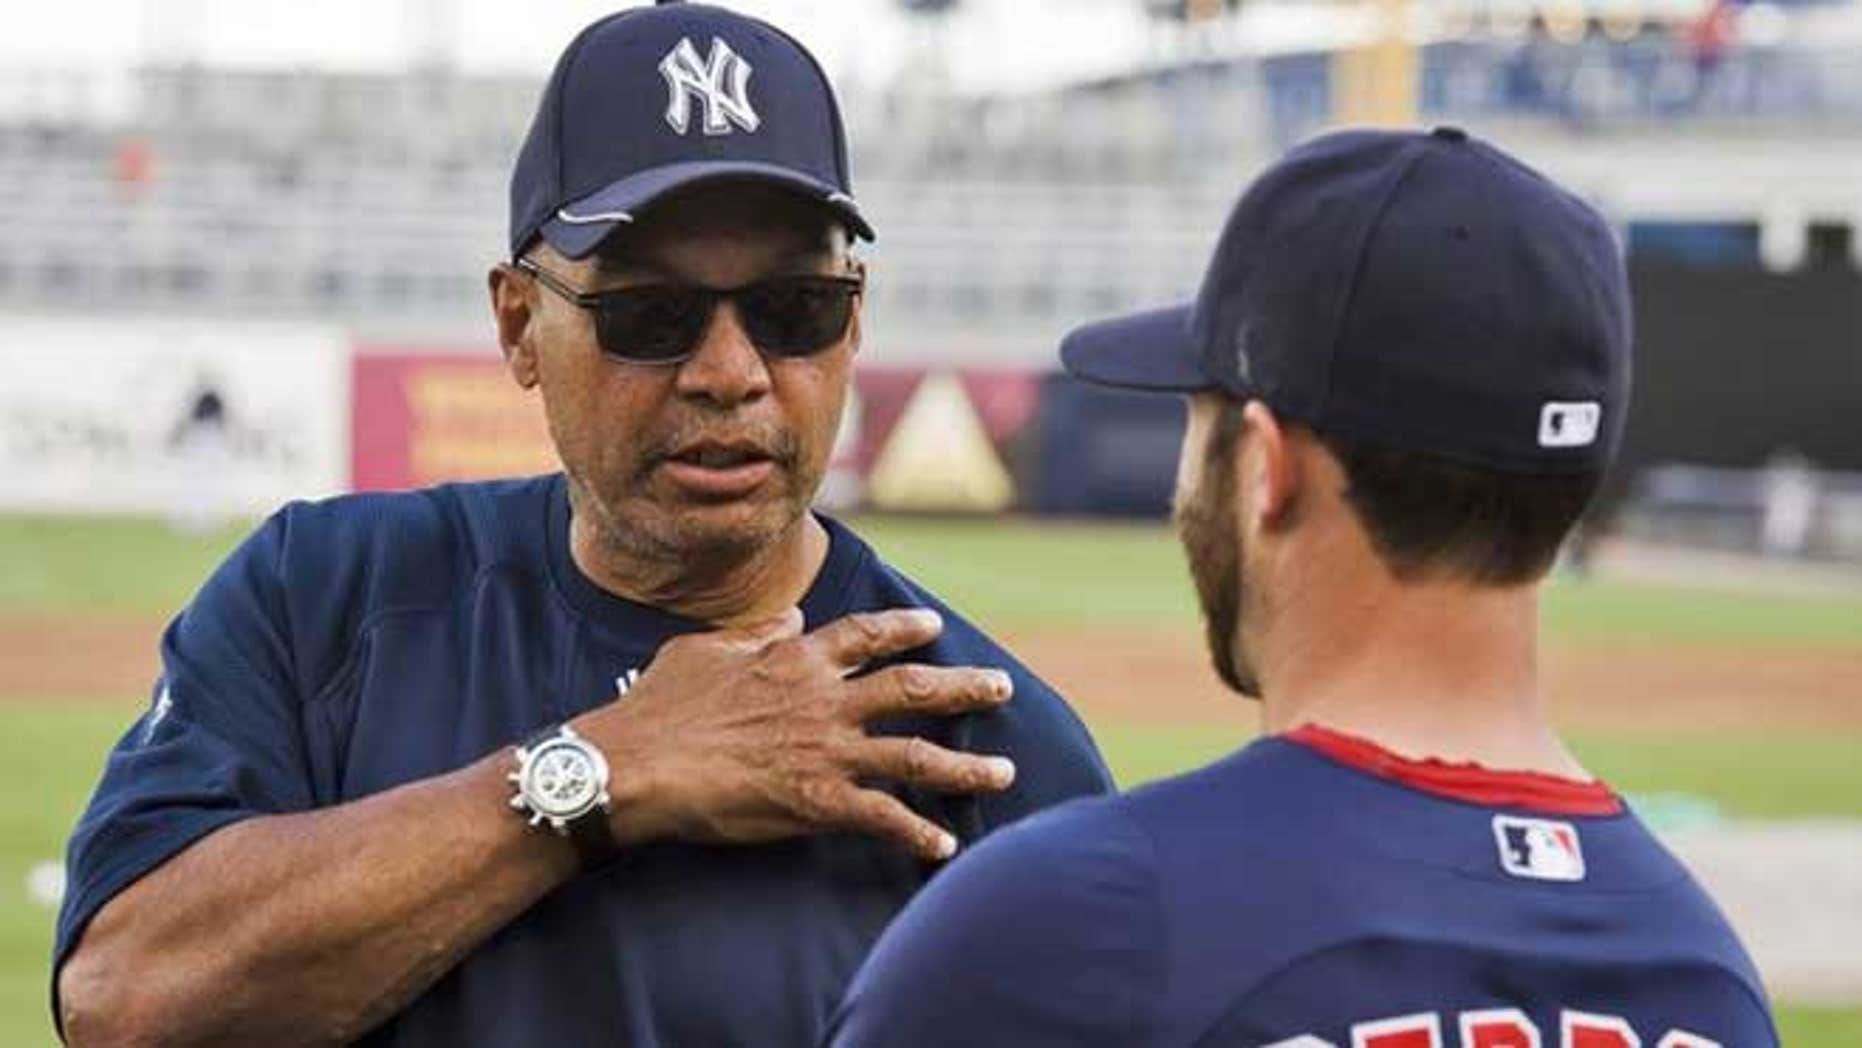 March 13, 2012: New York Yankees Hall of Famer Reggie Jackson (L) talks with Boston Red Sox infielder Dustin Pedroia during workouts before a spring training baseball game in Tampa, Florida.